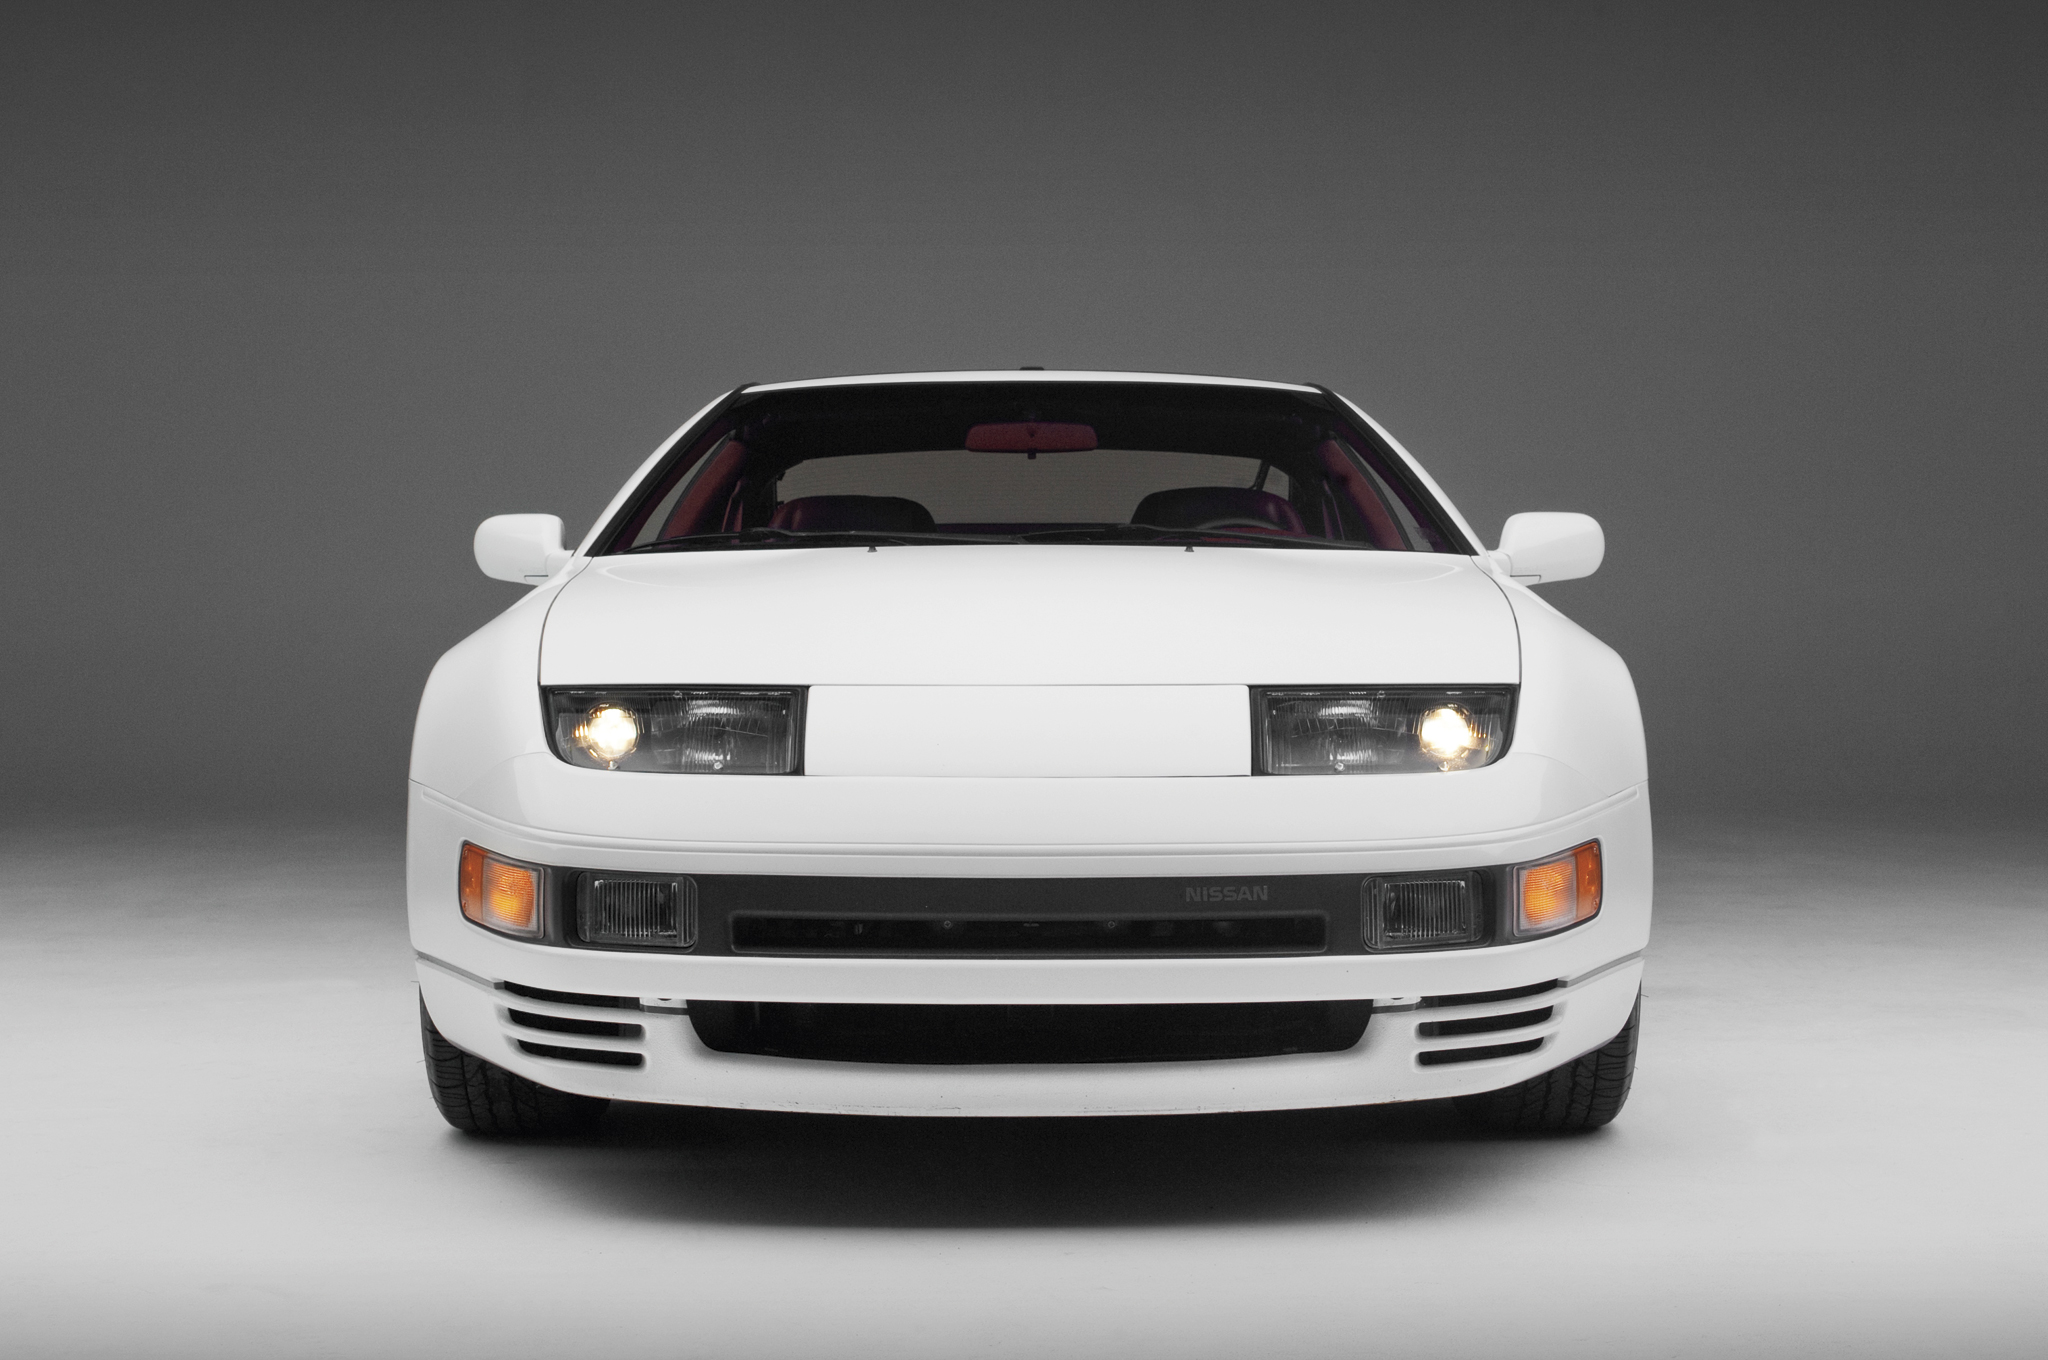 hight resolution of 300zx engine bay diagram